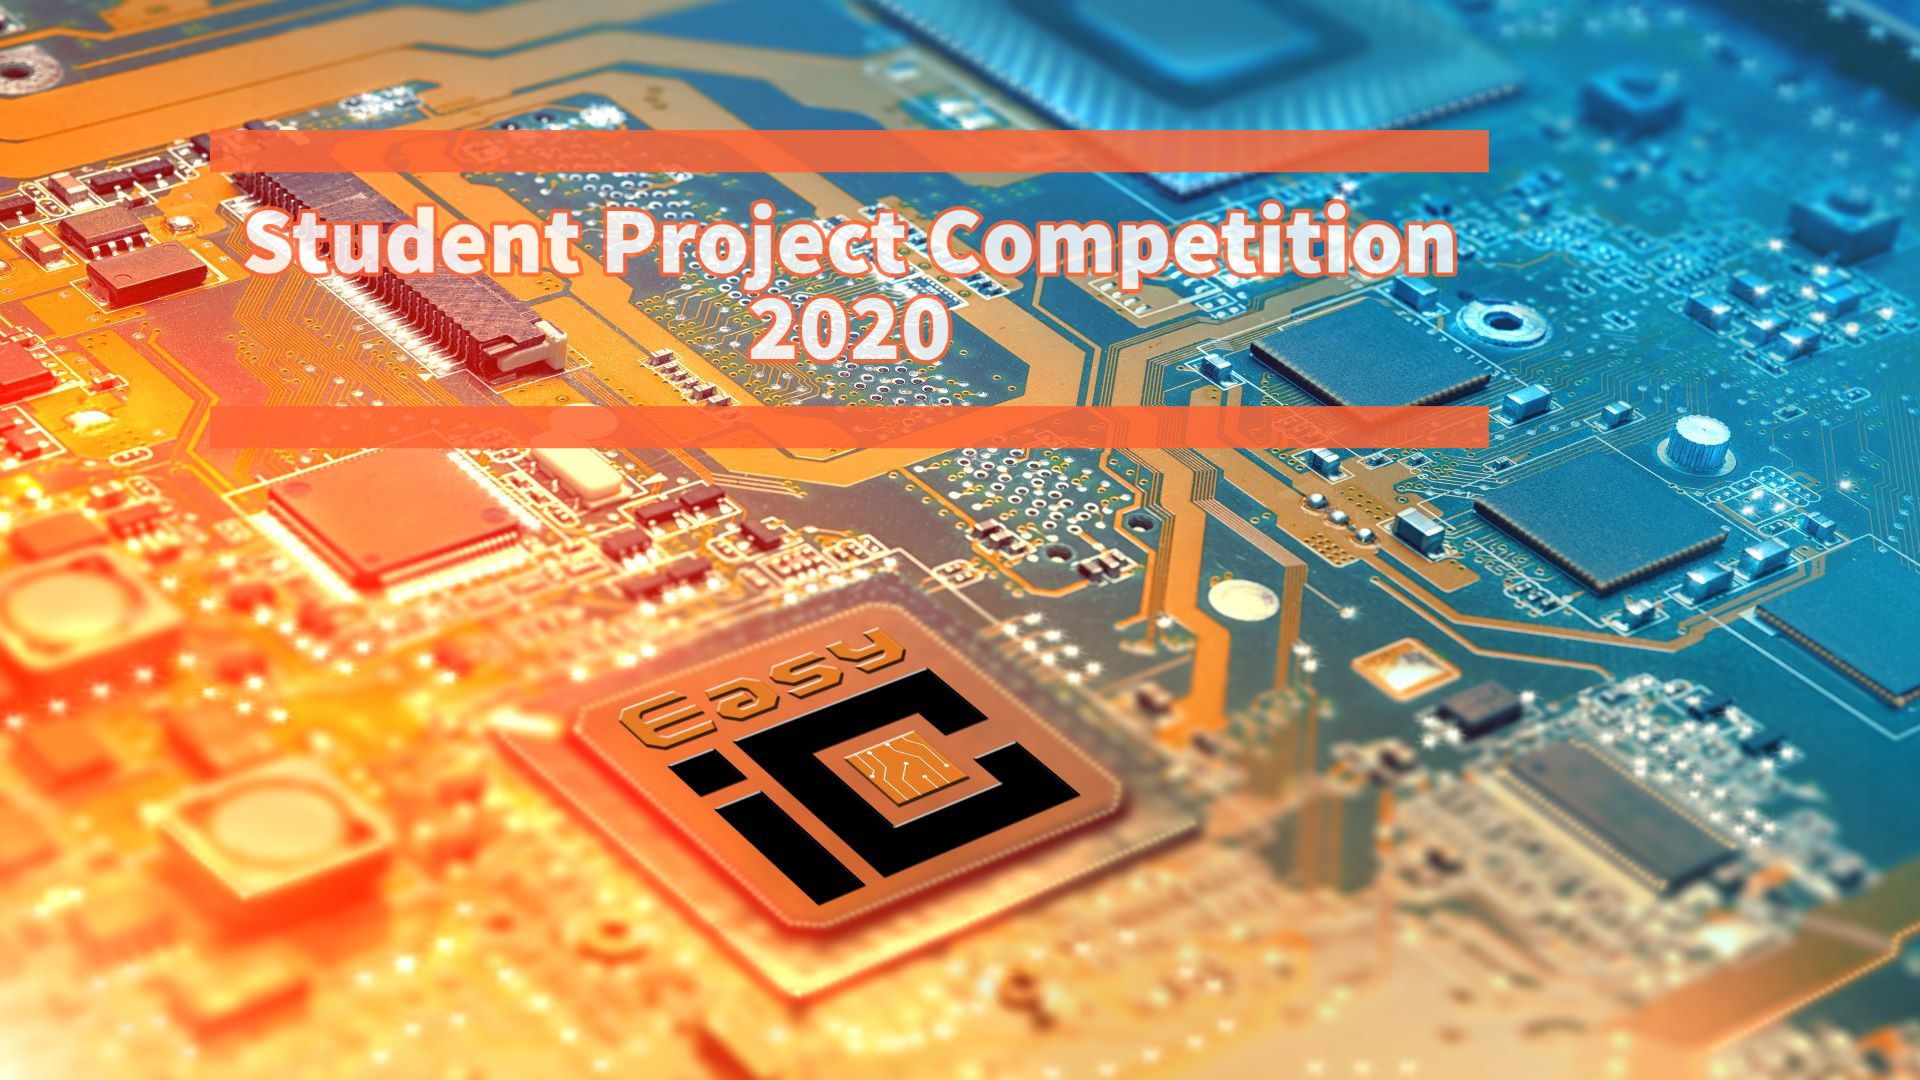 Winners of 2020 EasyIC Student Project Competition Announced